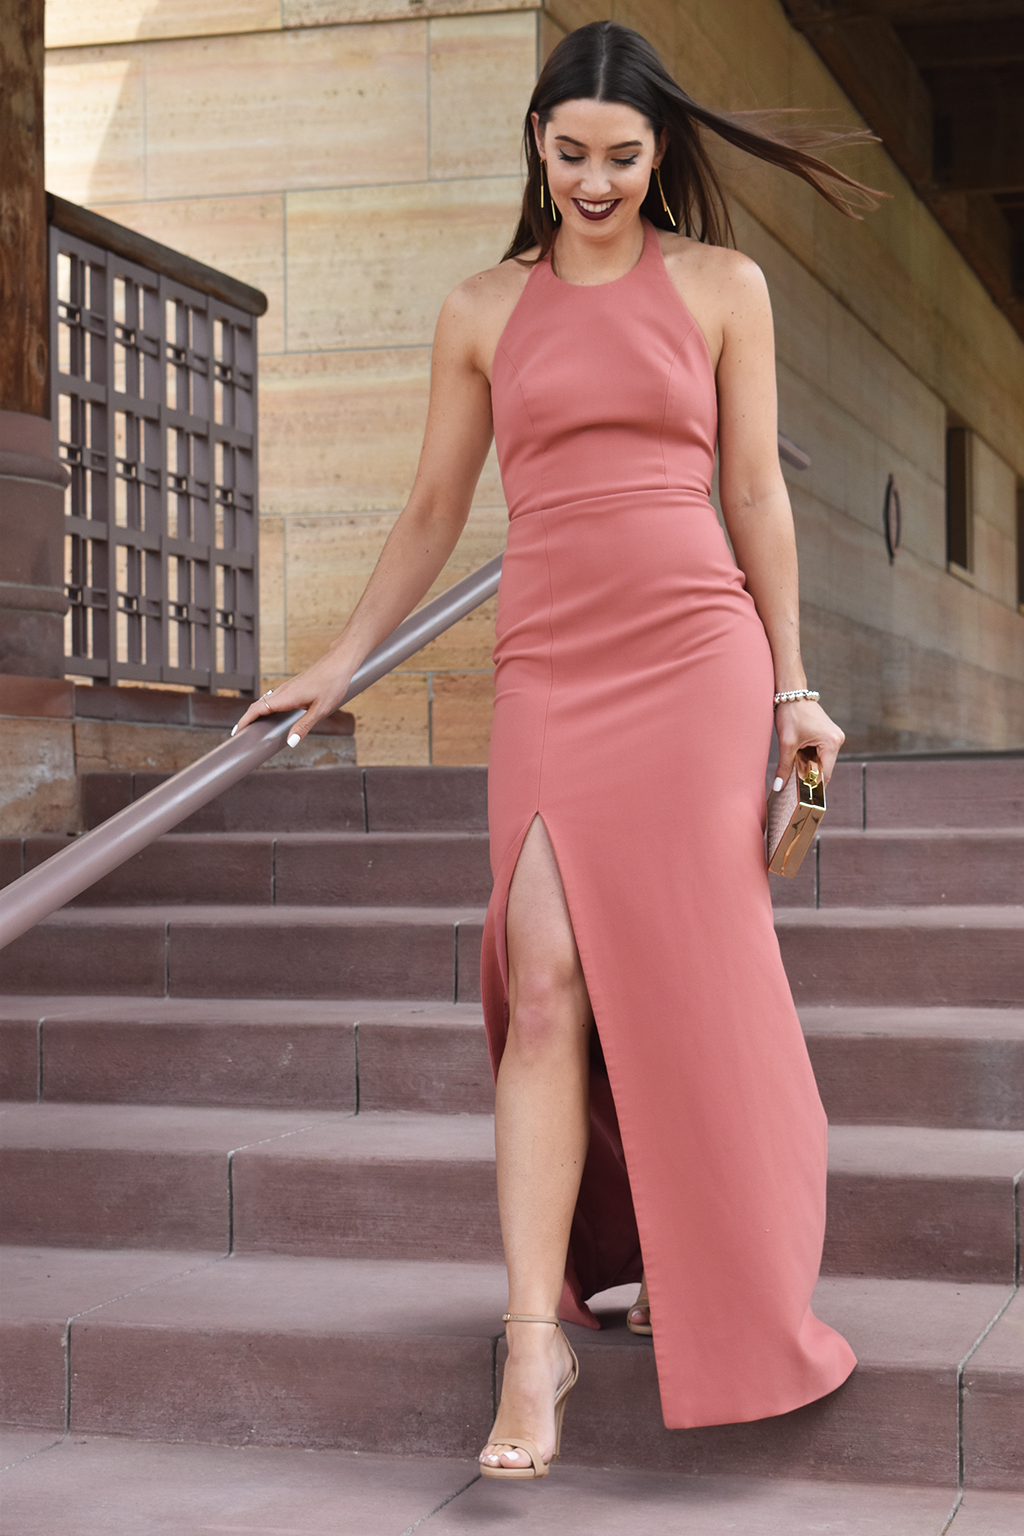 A Black Tie-Affair | Rent the Runway Elizabeth and James Gown, Rent the Runway Inge Christopher White Corsica Scale Clutch, Steve Madden Stecy Two-Piece Sandals, Rent the Runway Gorjana Accessories Mave Double Drop Earrings